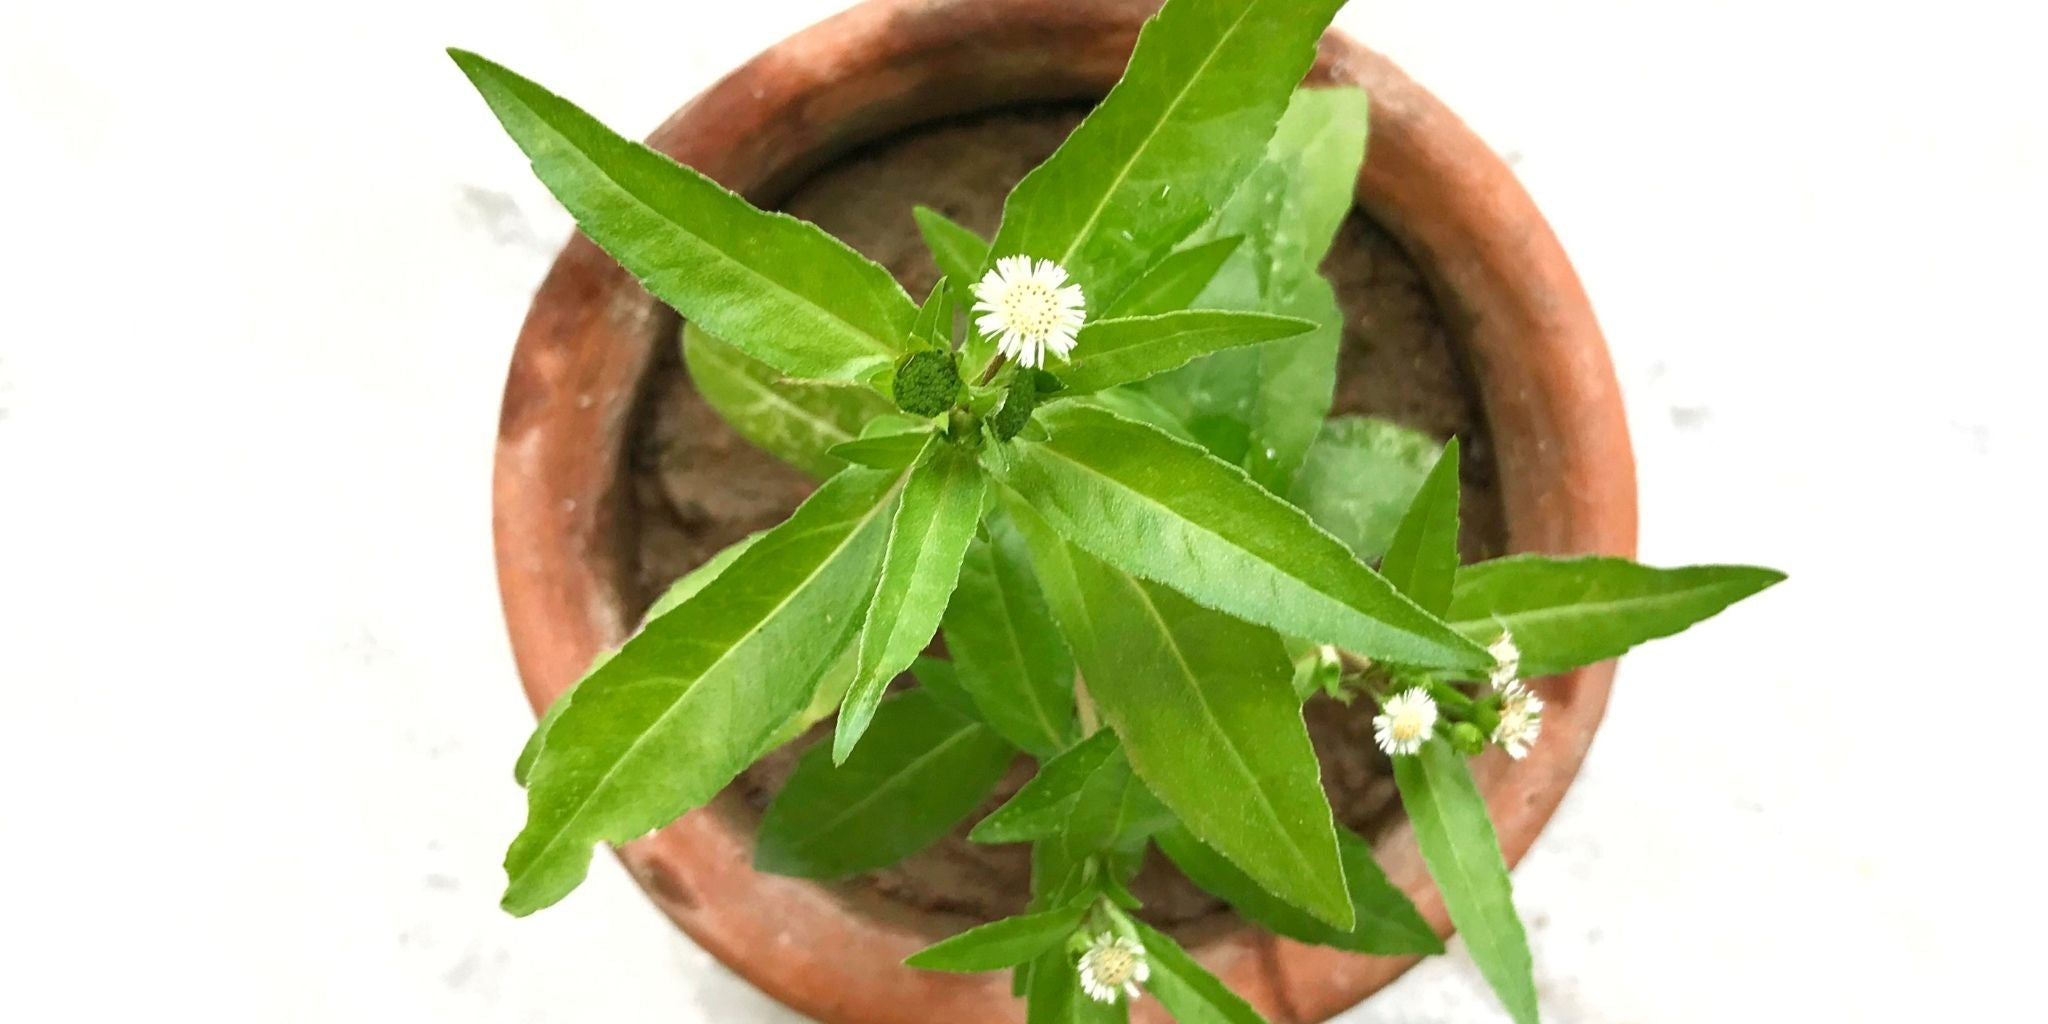 Bhringraj Herb Health Benefits and How to Use It